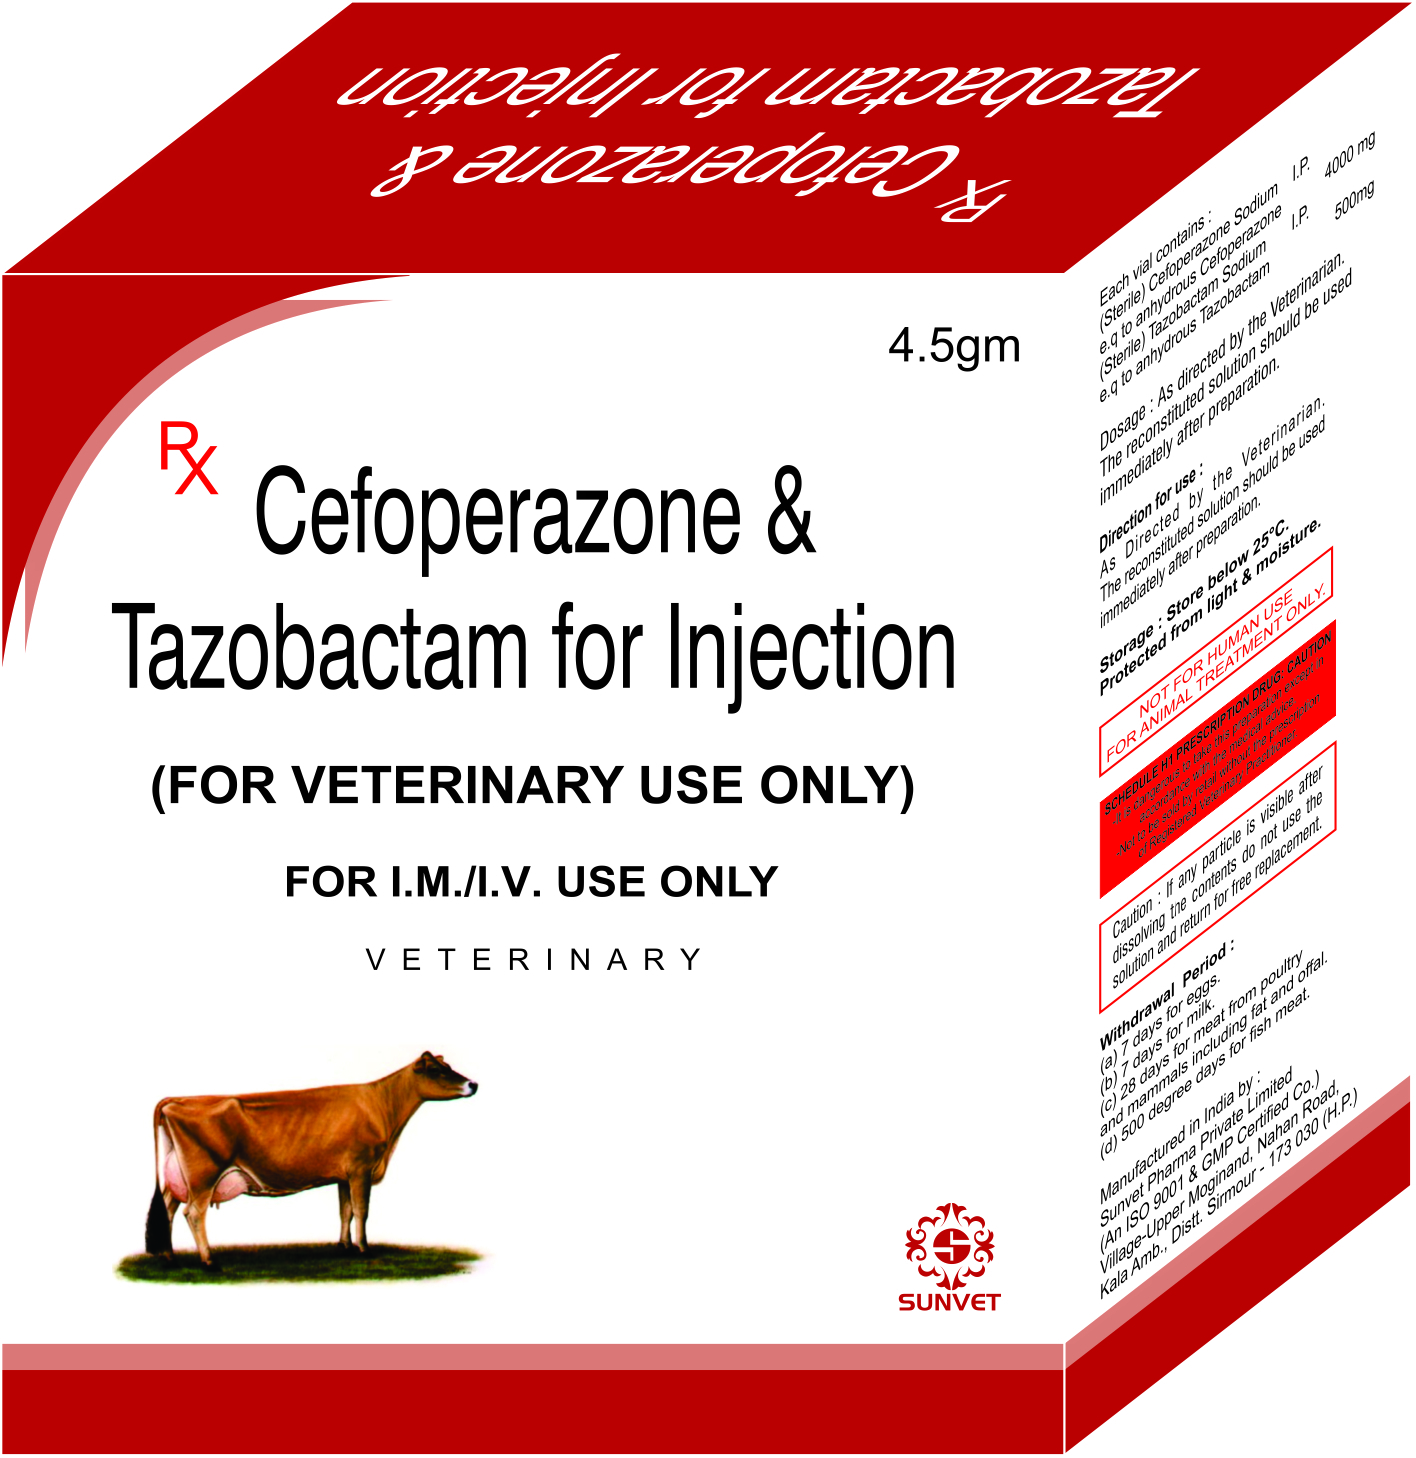 Amoxycillin Sulbactam Injection 4.5 g For Veterinary Use Only